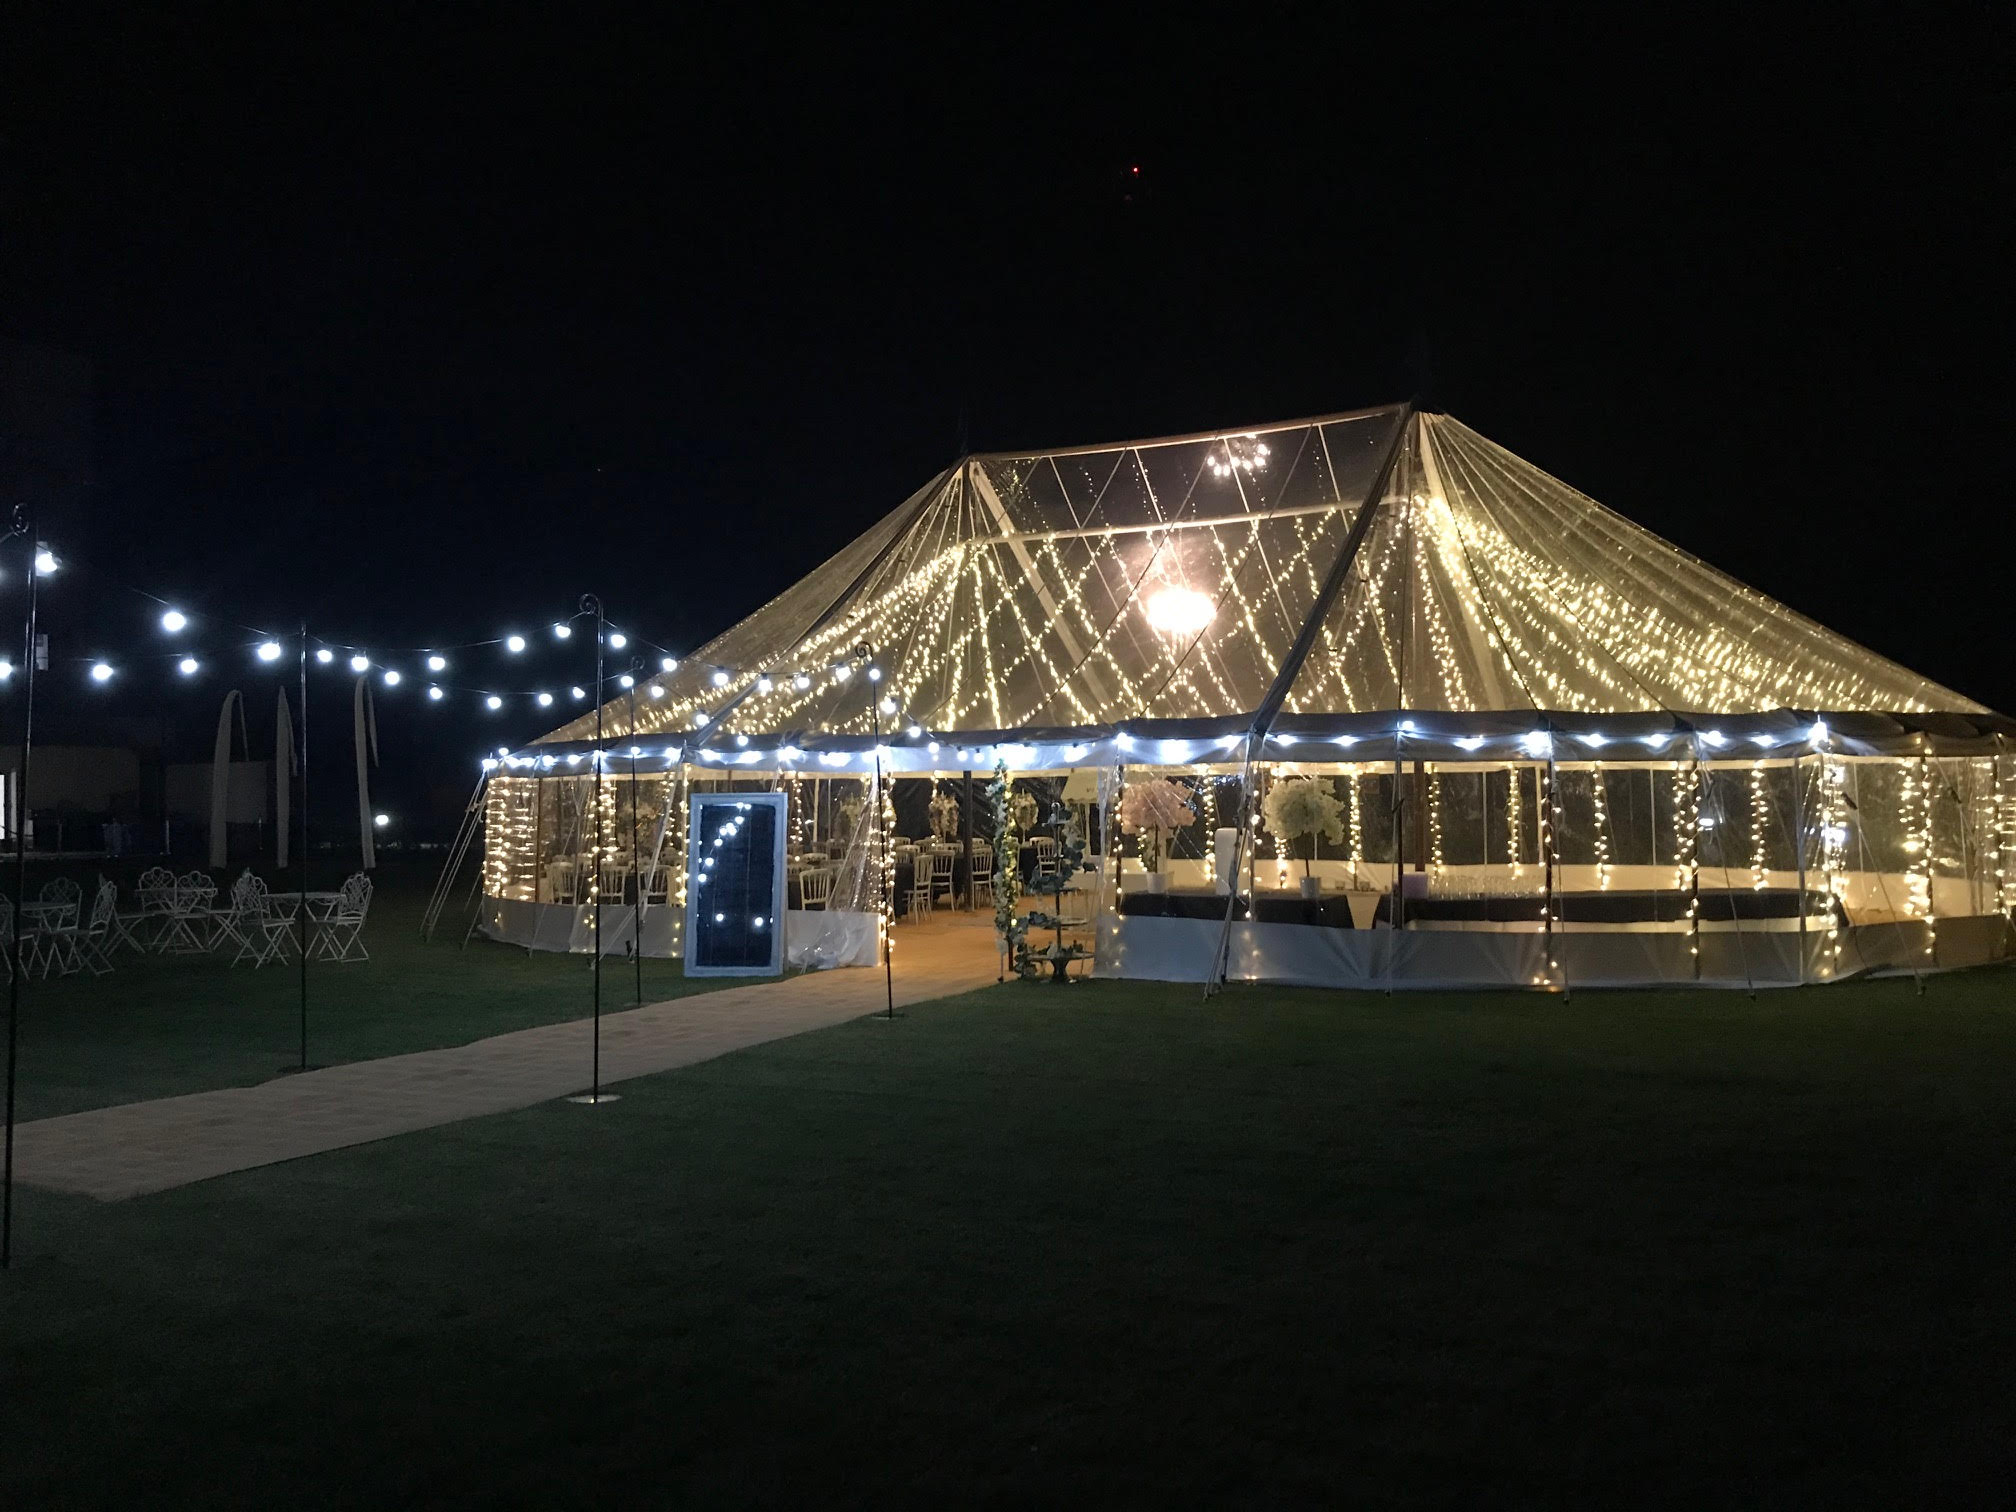 County Marquees East Anglia Transparent Traditional Marquee Hire with Festoon Lighting and Interior Lightin